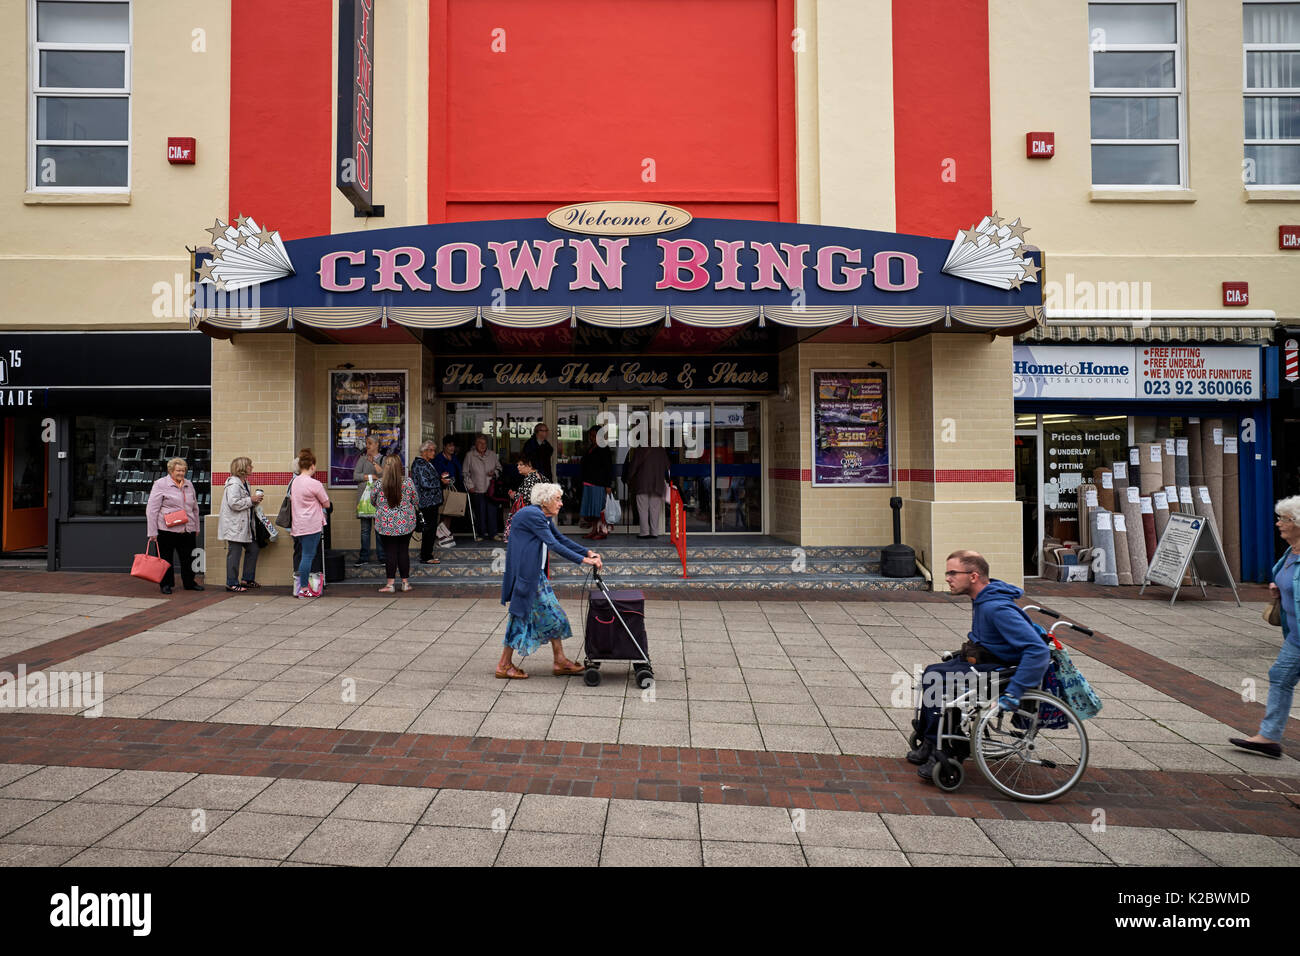 Crown Bingo with people waiting outside for it to open Stock Photo